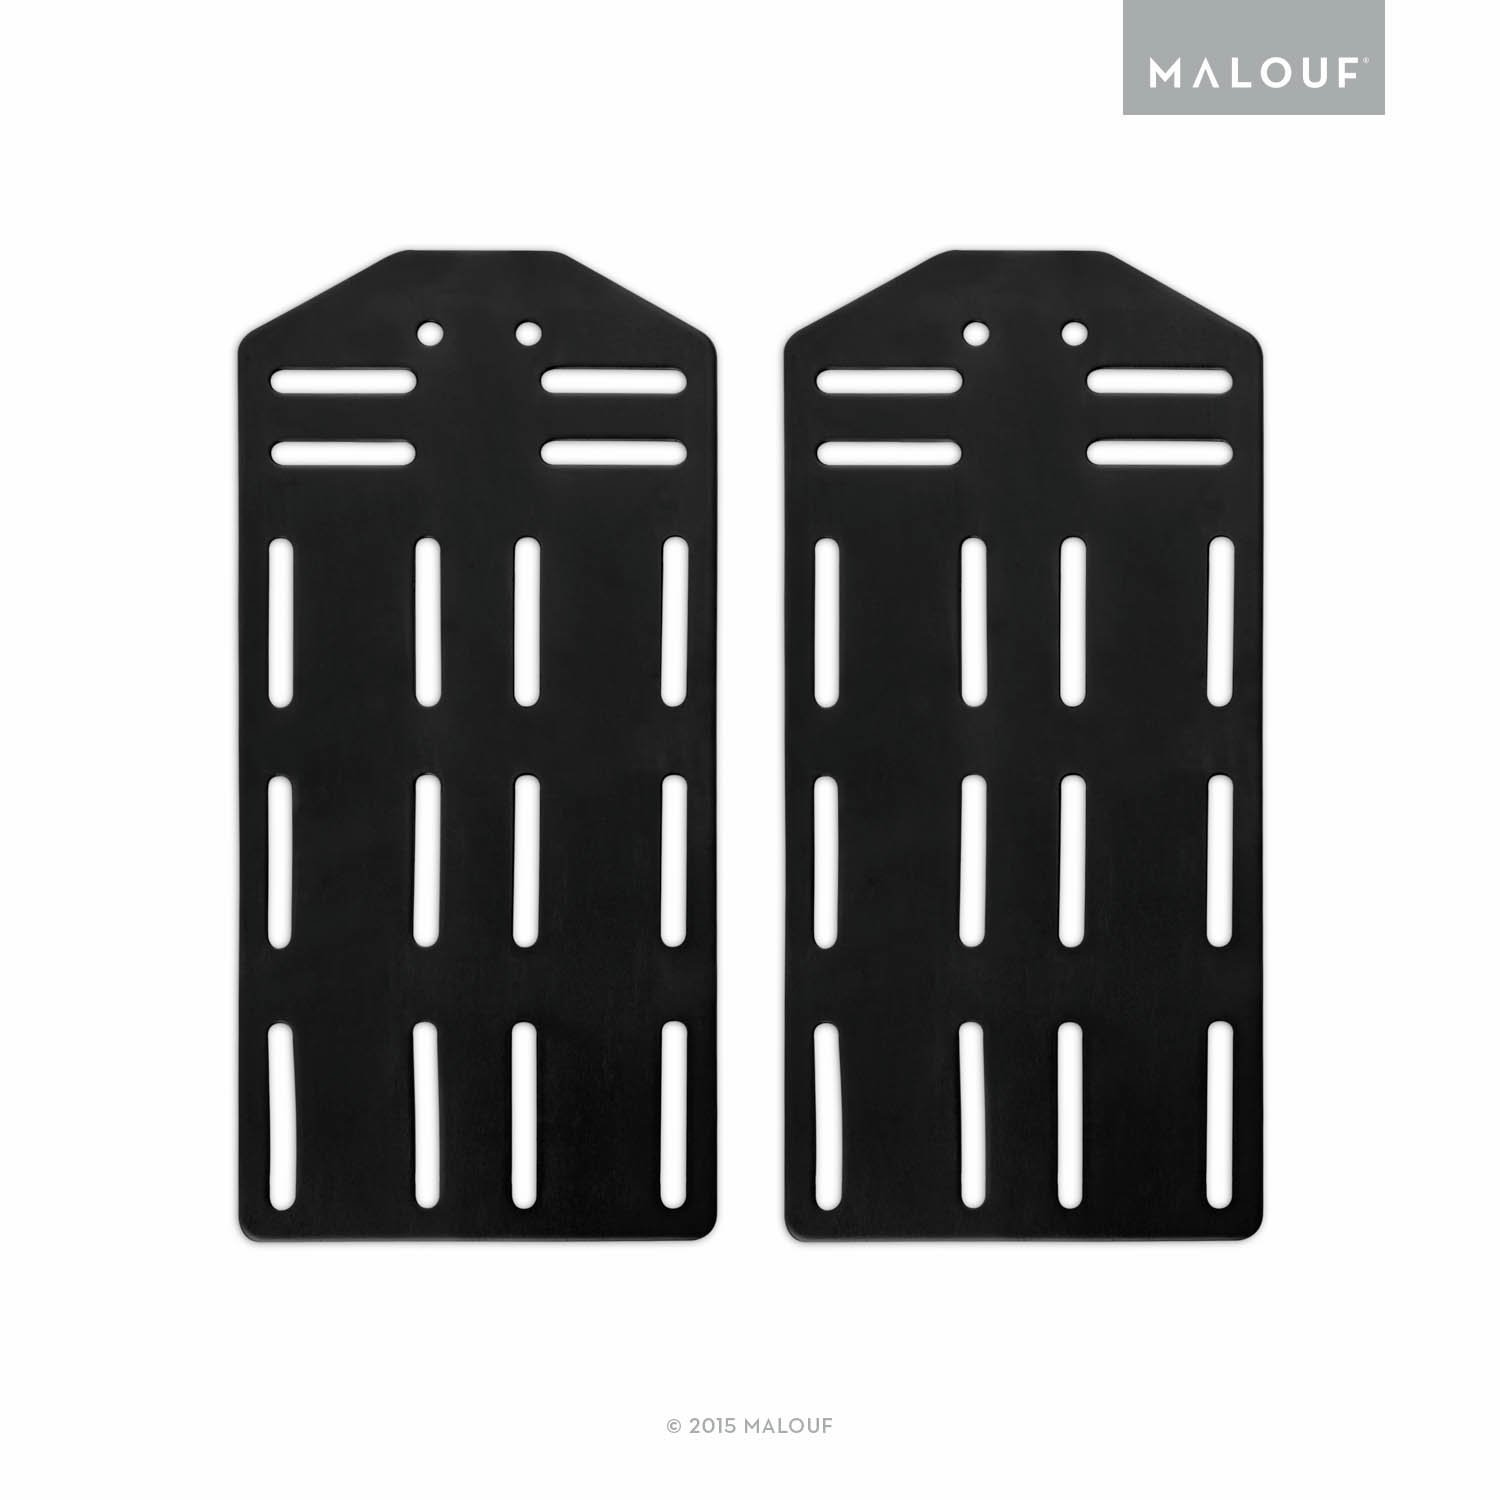 MALOUF STRUCTURES King Bed Frame Headboard Bracket Modification Plate Modi, Set of 2 ST00KKMO